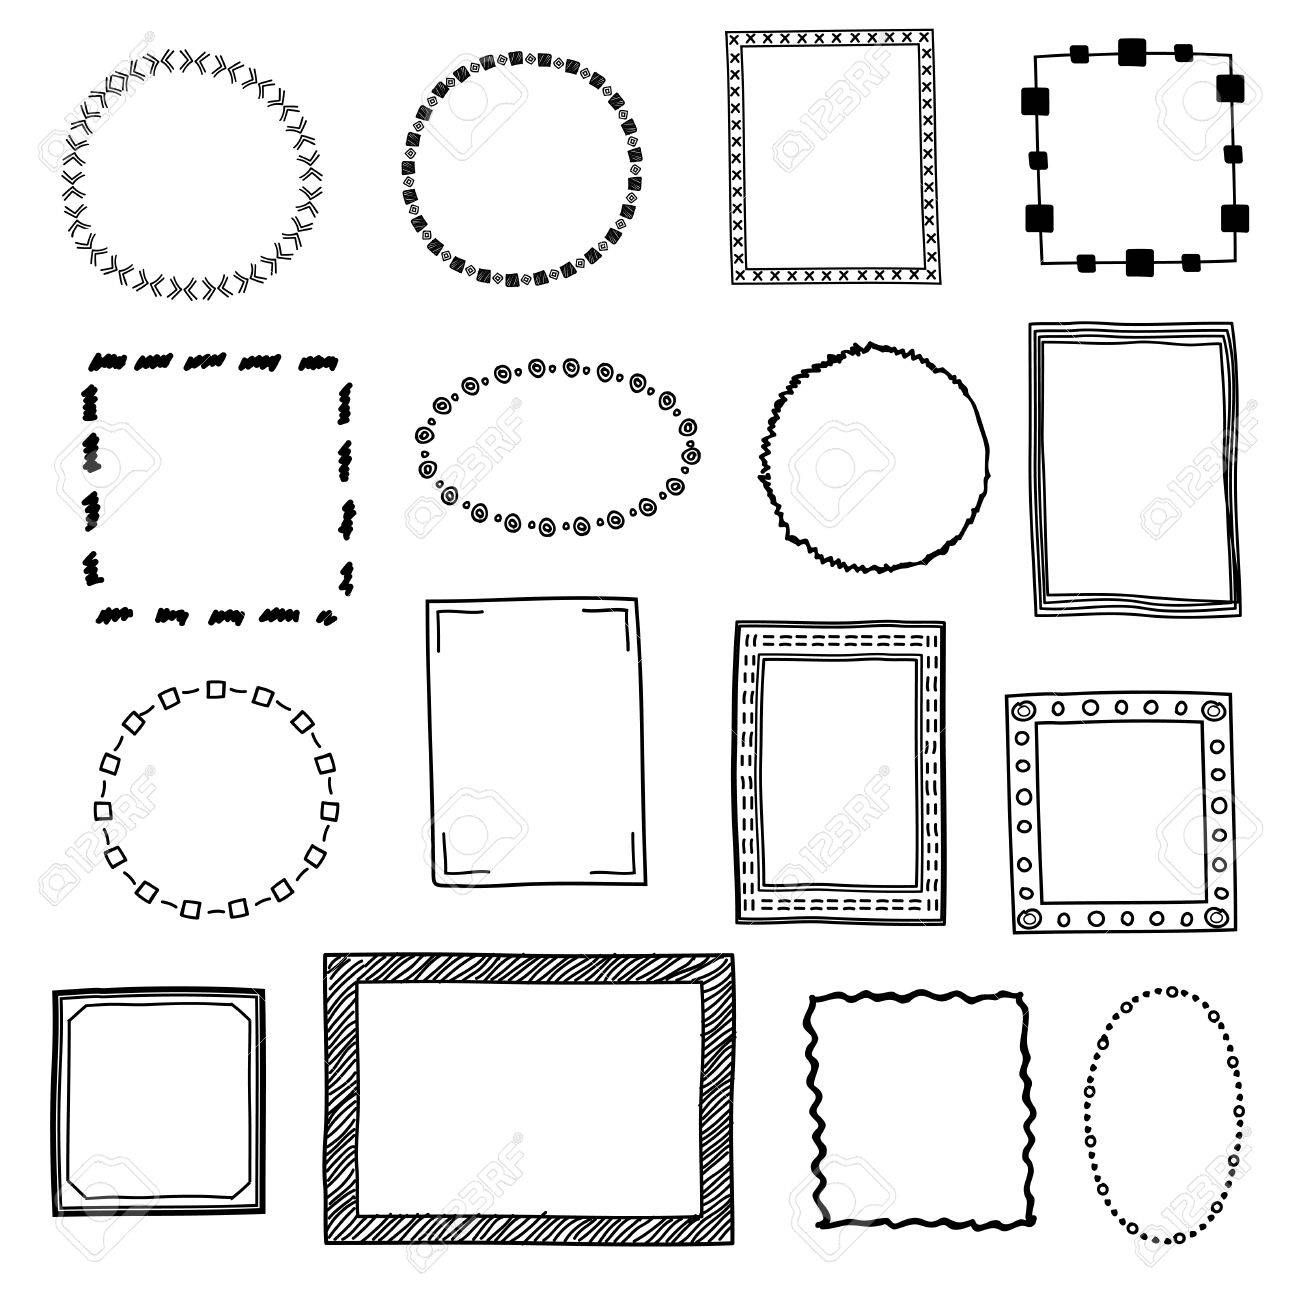 Hand Drawn Doodle Frames Borders Vector Set Frame Sketch For Decoration Drawing Frames In Form Square And Cir Doodle Frames Drawing Frames How To Draw Hands